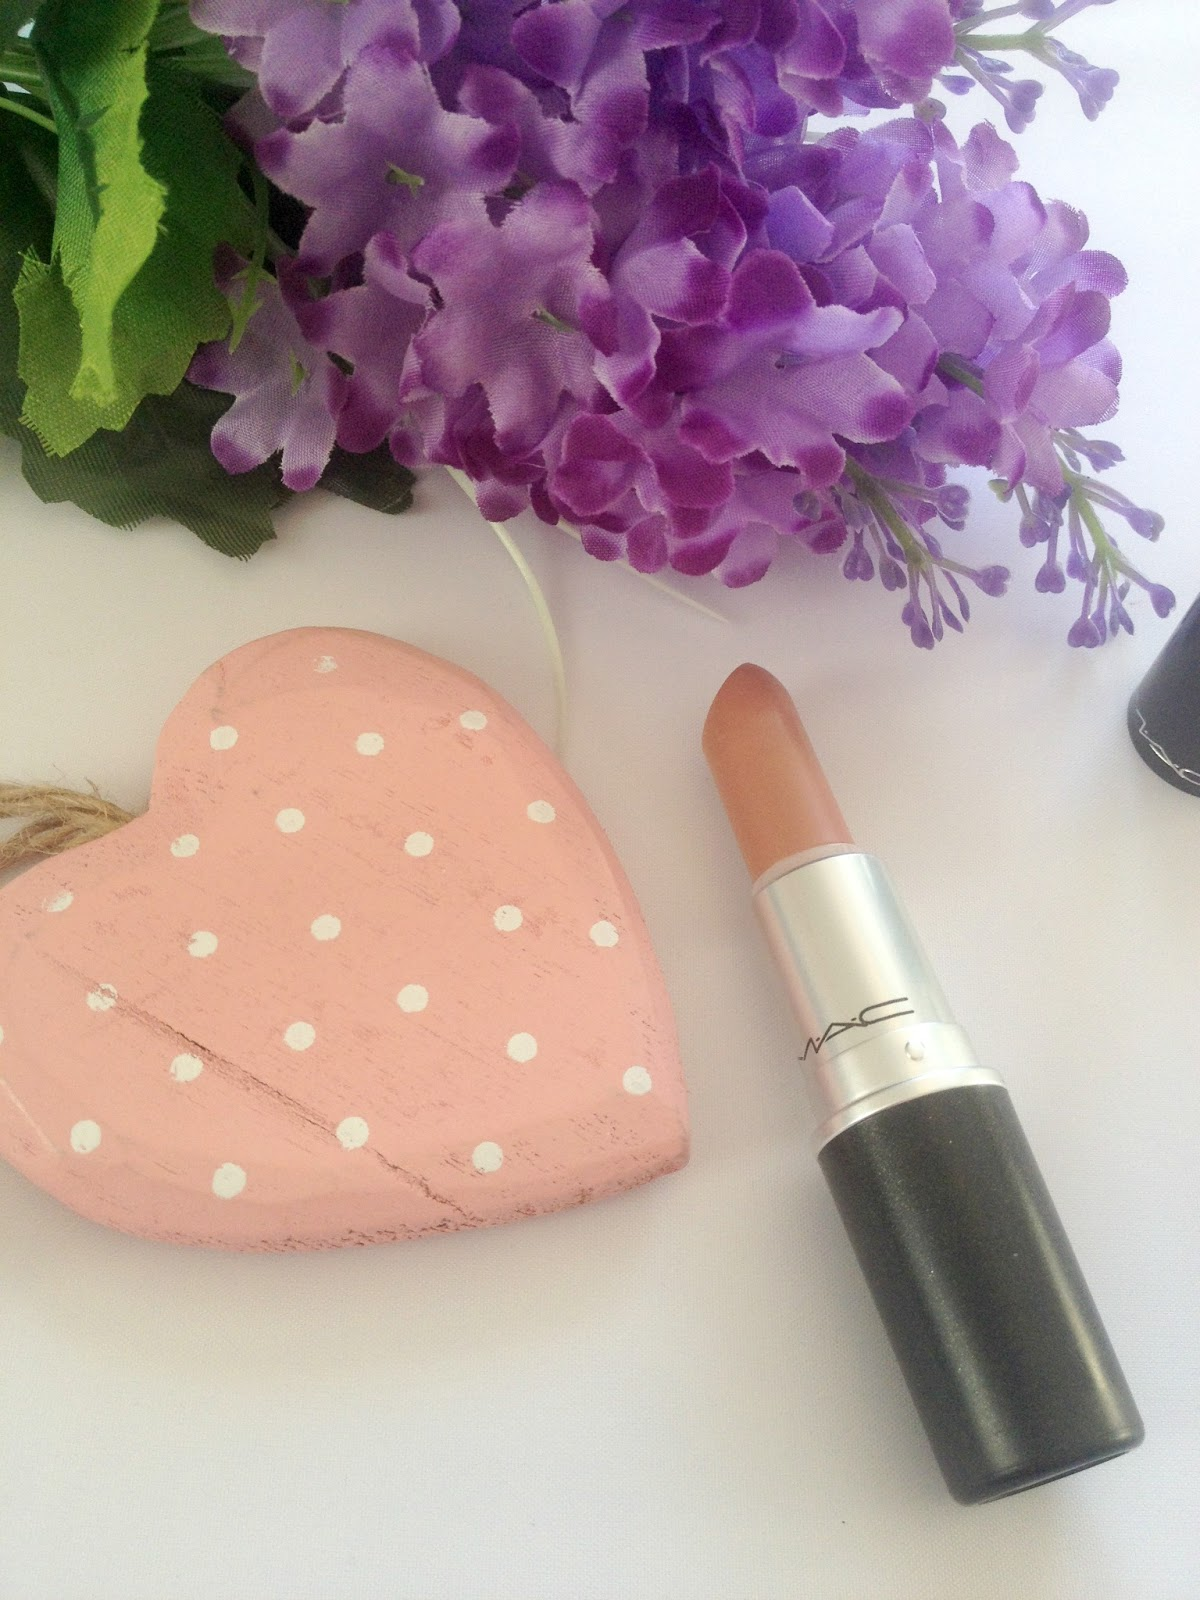 MAC Honeylove Lipstick